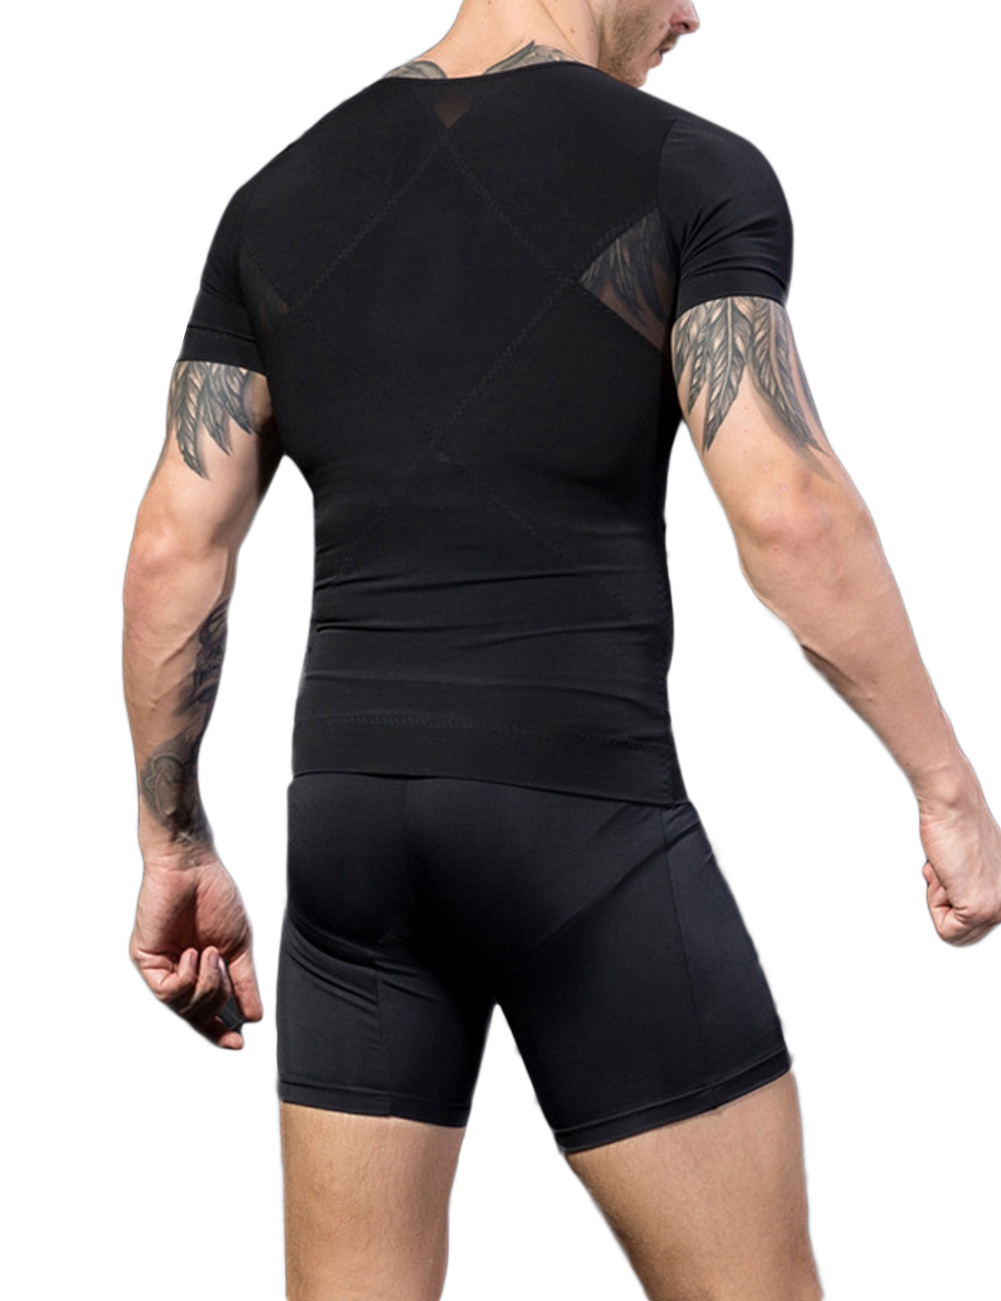 //cdn.affectcloud.com/hexinfashion/upload/imgs/Shaper/Men_Shaper/B180034BK01/B180034BK01-201911055dc1402a5c221.jpg